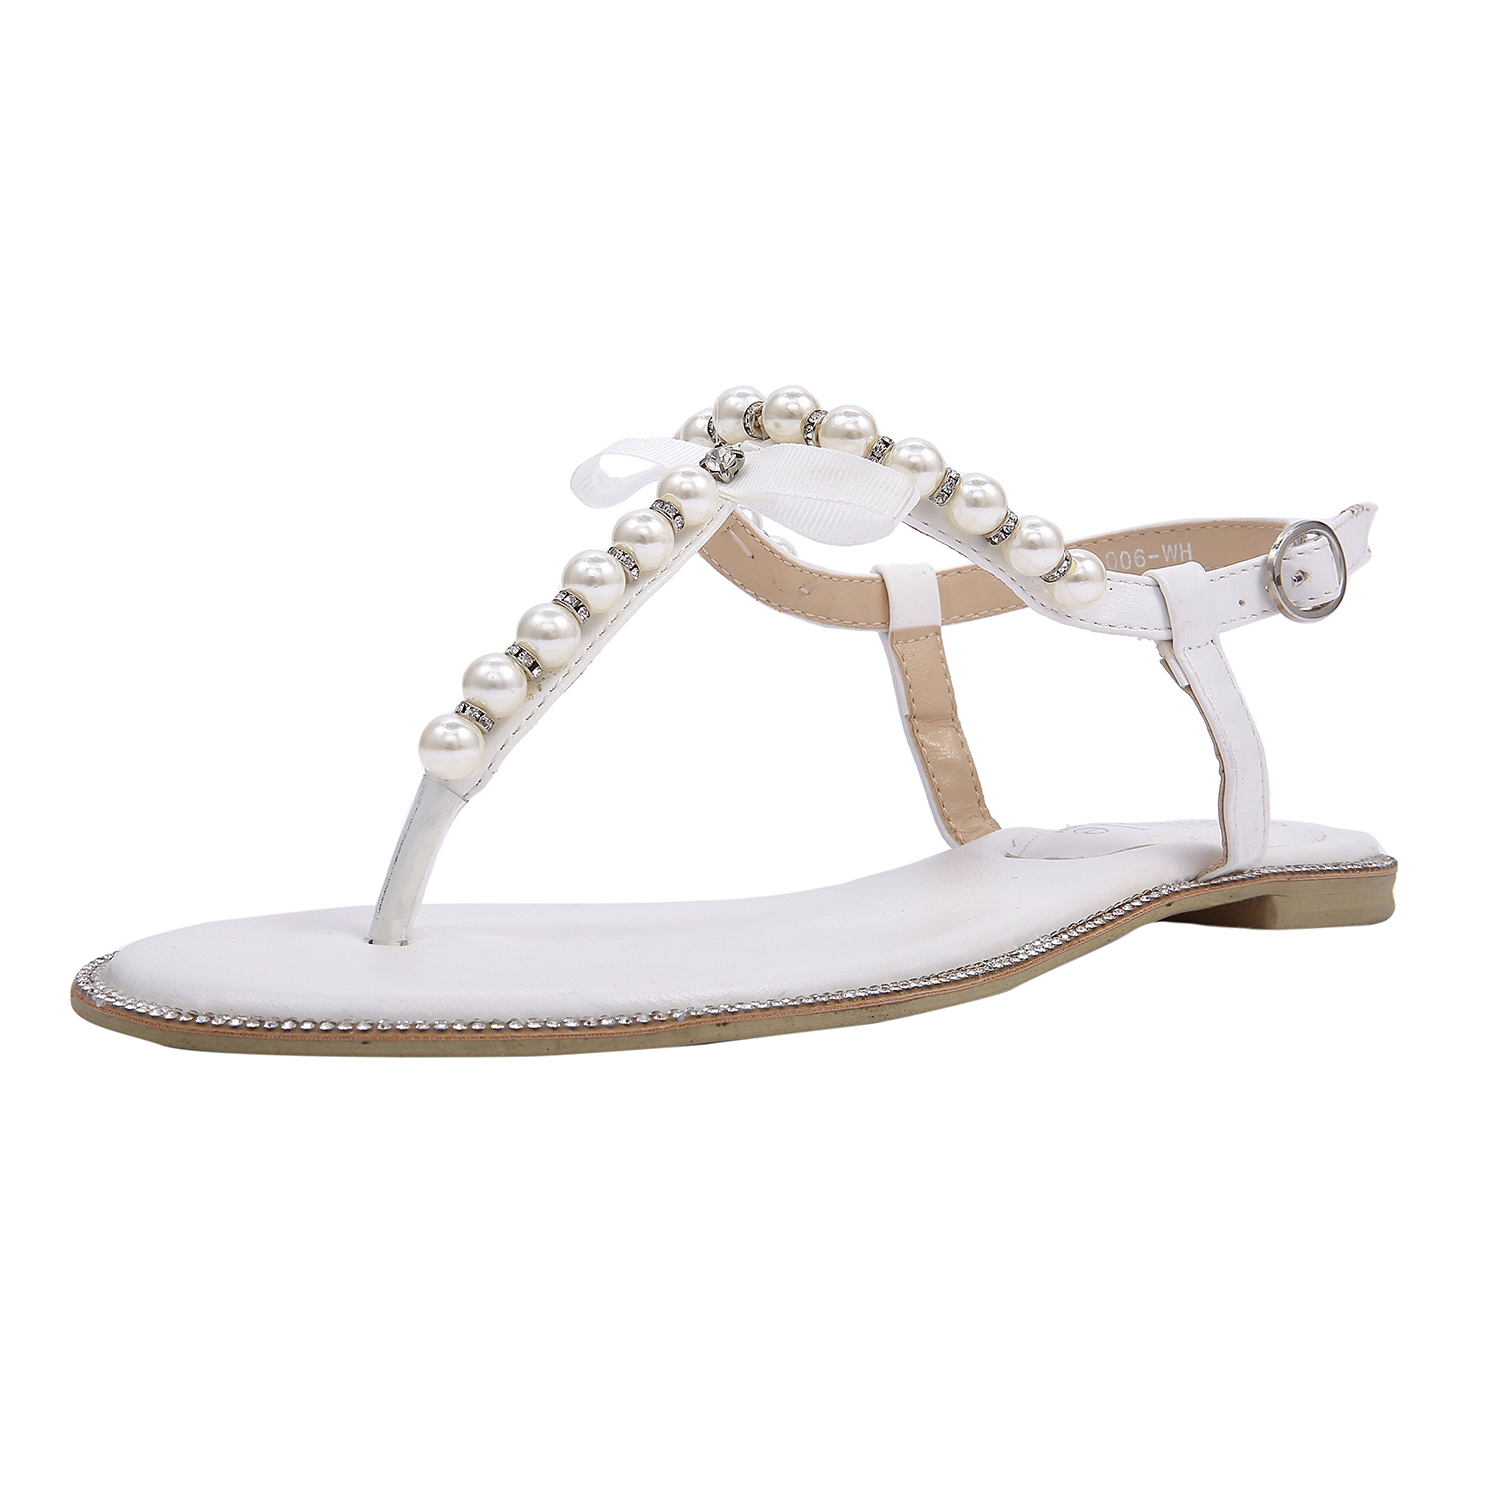 Details about SheSole Flat Sandals Flip Flops Beach Wedding Shoes Pearl Ankle Strap White New!